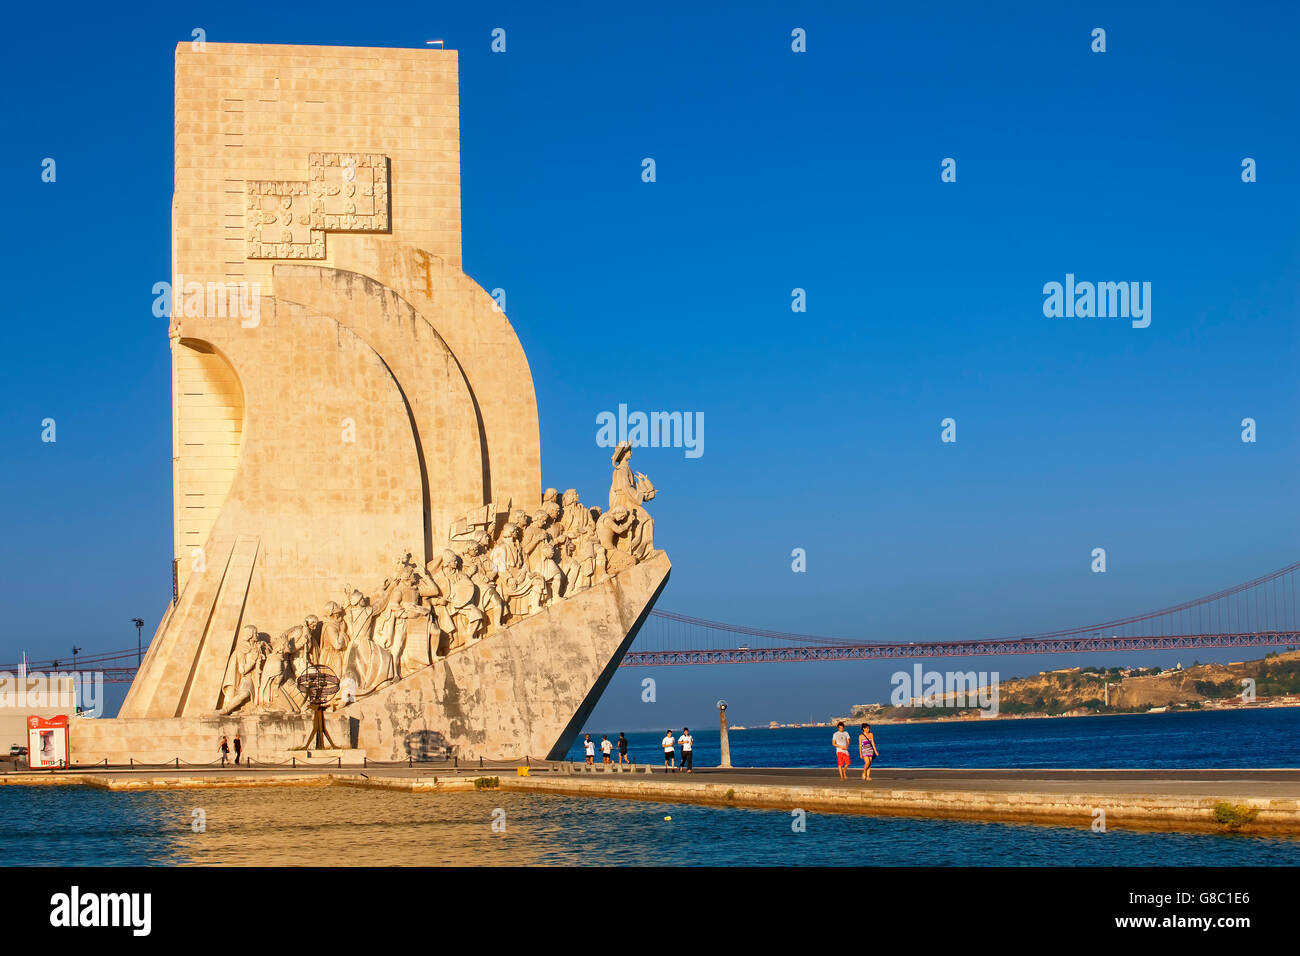 The Monument to the Discoveries in Belem, Lisbon - Stock Image